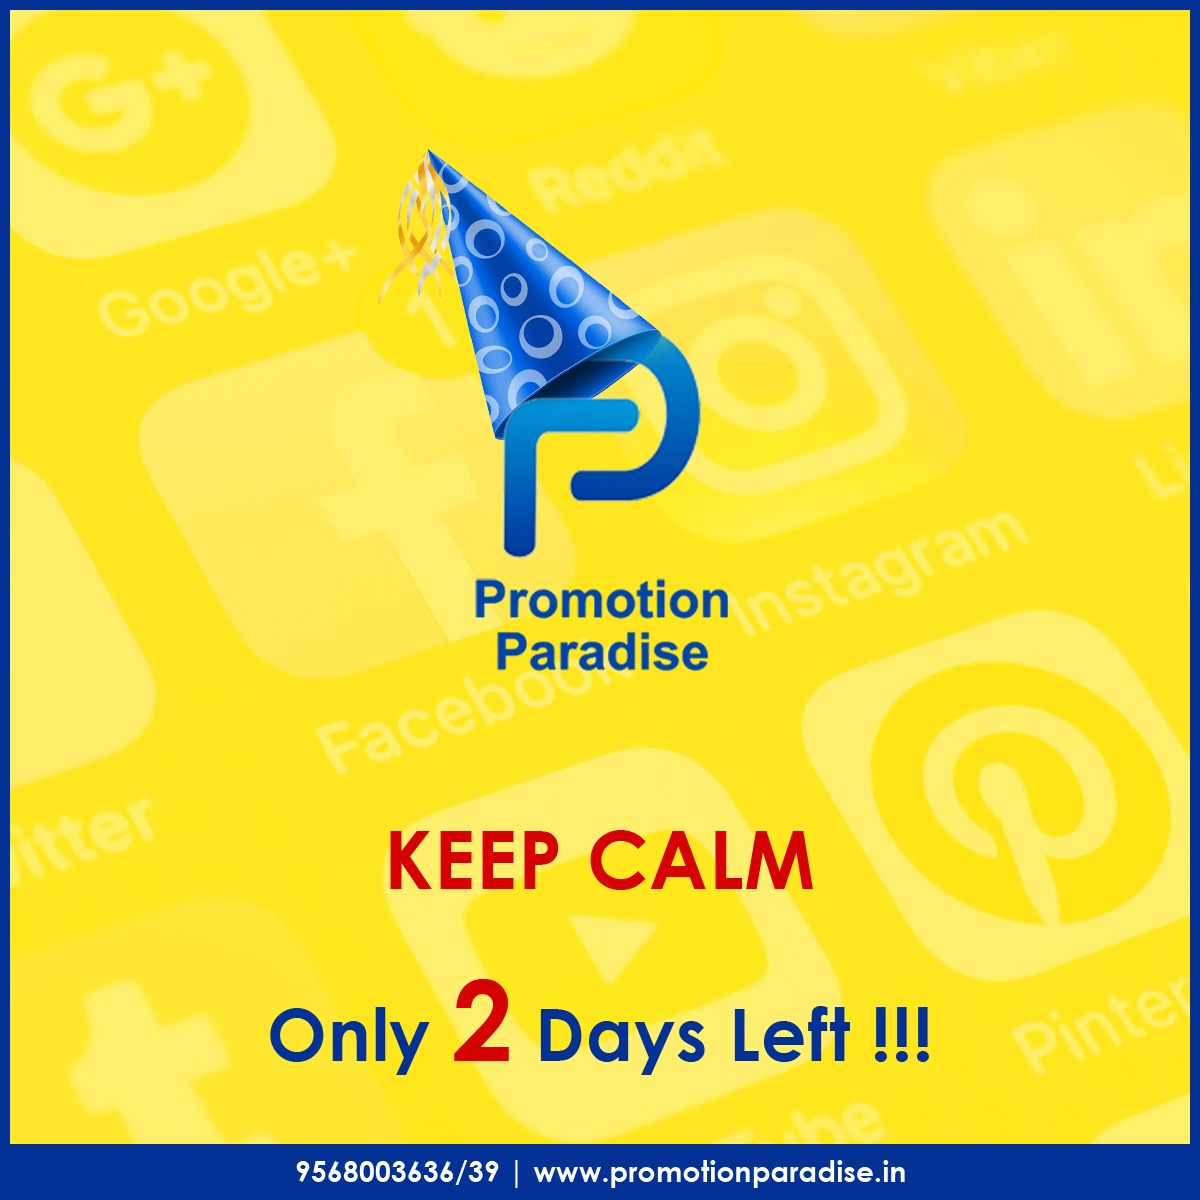 Keep calm and let the countdown begins. 2 days to go!!  #Anniversary #Celebrations #2DaysLeft #YearsOfExcellence #Expertise #DigitalMarketing #Marketing #Promotions #DigitalMarketingStrategy #PromotionParadise #Meerut